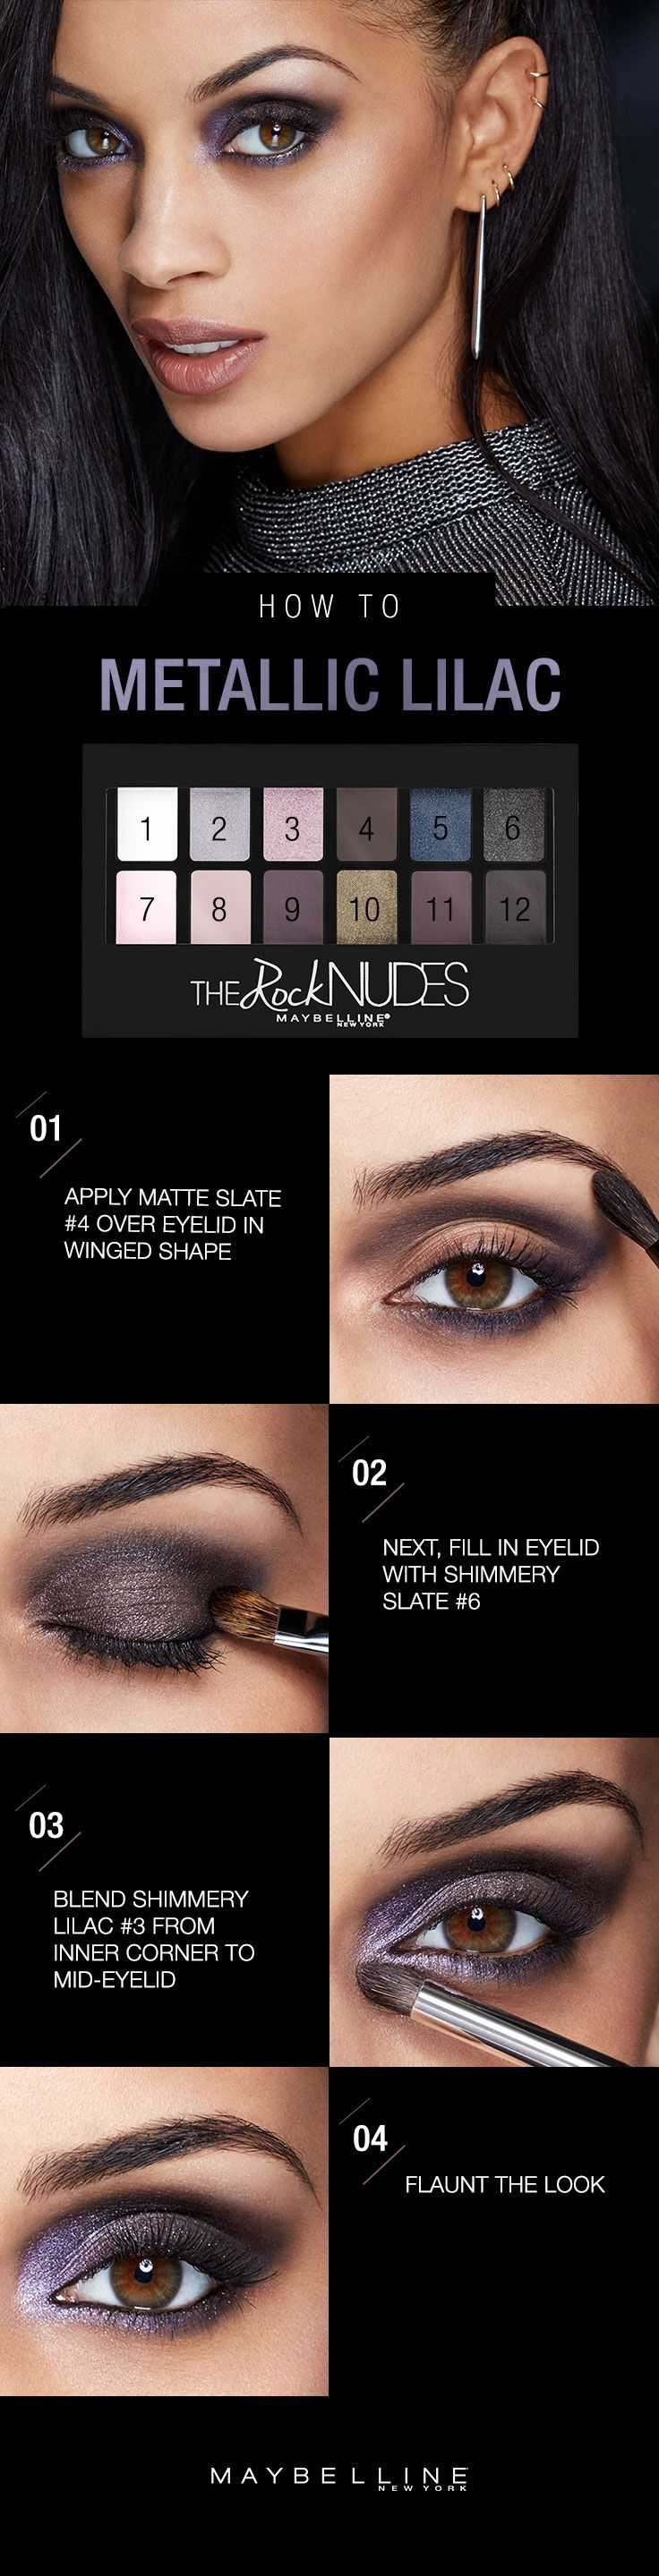 Feeling dark and daring this winter? Take this metallic smoky eye with a pretty amethyst shine and run with it. Grab your Maybelline Rock Nudes eyeshadow palette and apply the matte slate shade from inner to outer corner of eyelid, forming a wing shape. Smudge with brush to smoke out your wing, then fill in your eyelid with shimmery slate before blending it all in with shimmery lilac from your inner corners to mid-eyelid. Oh yeah. You're a badass. Click for the full step-by-step!